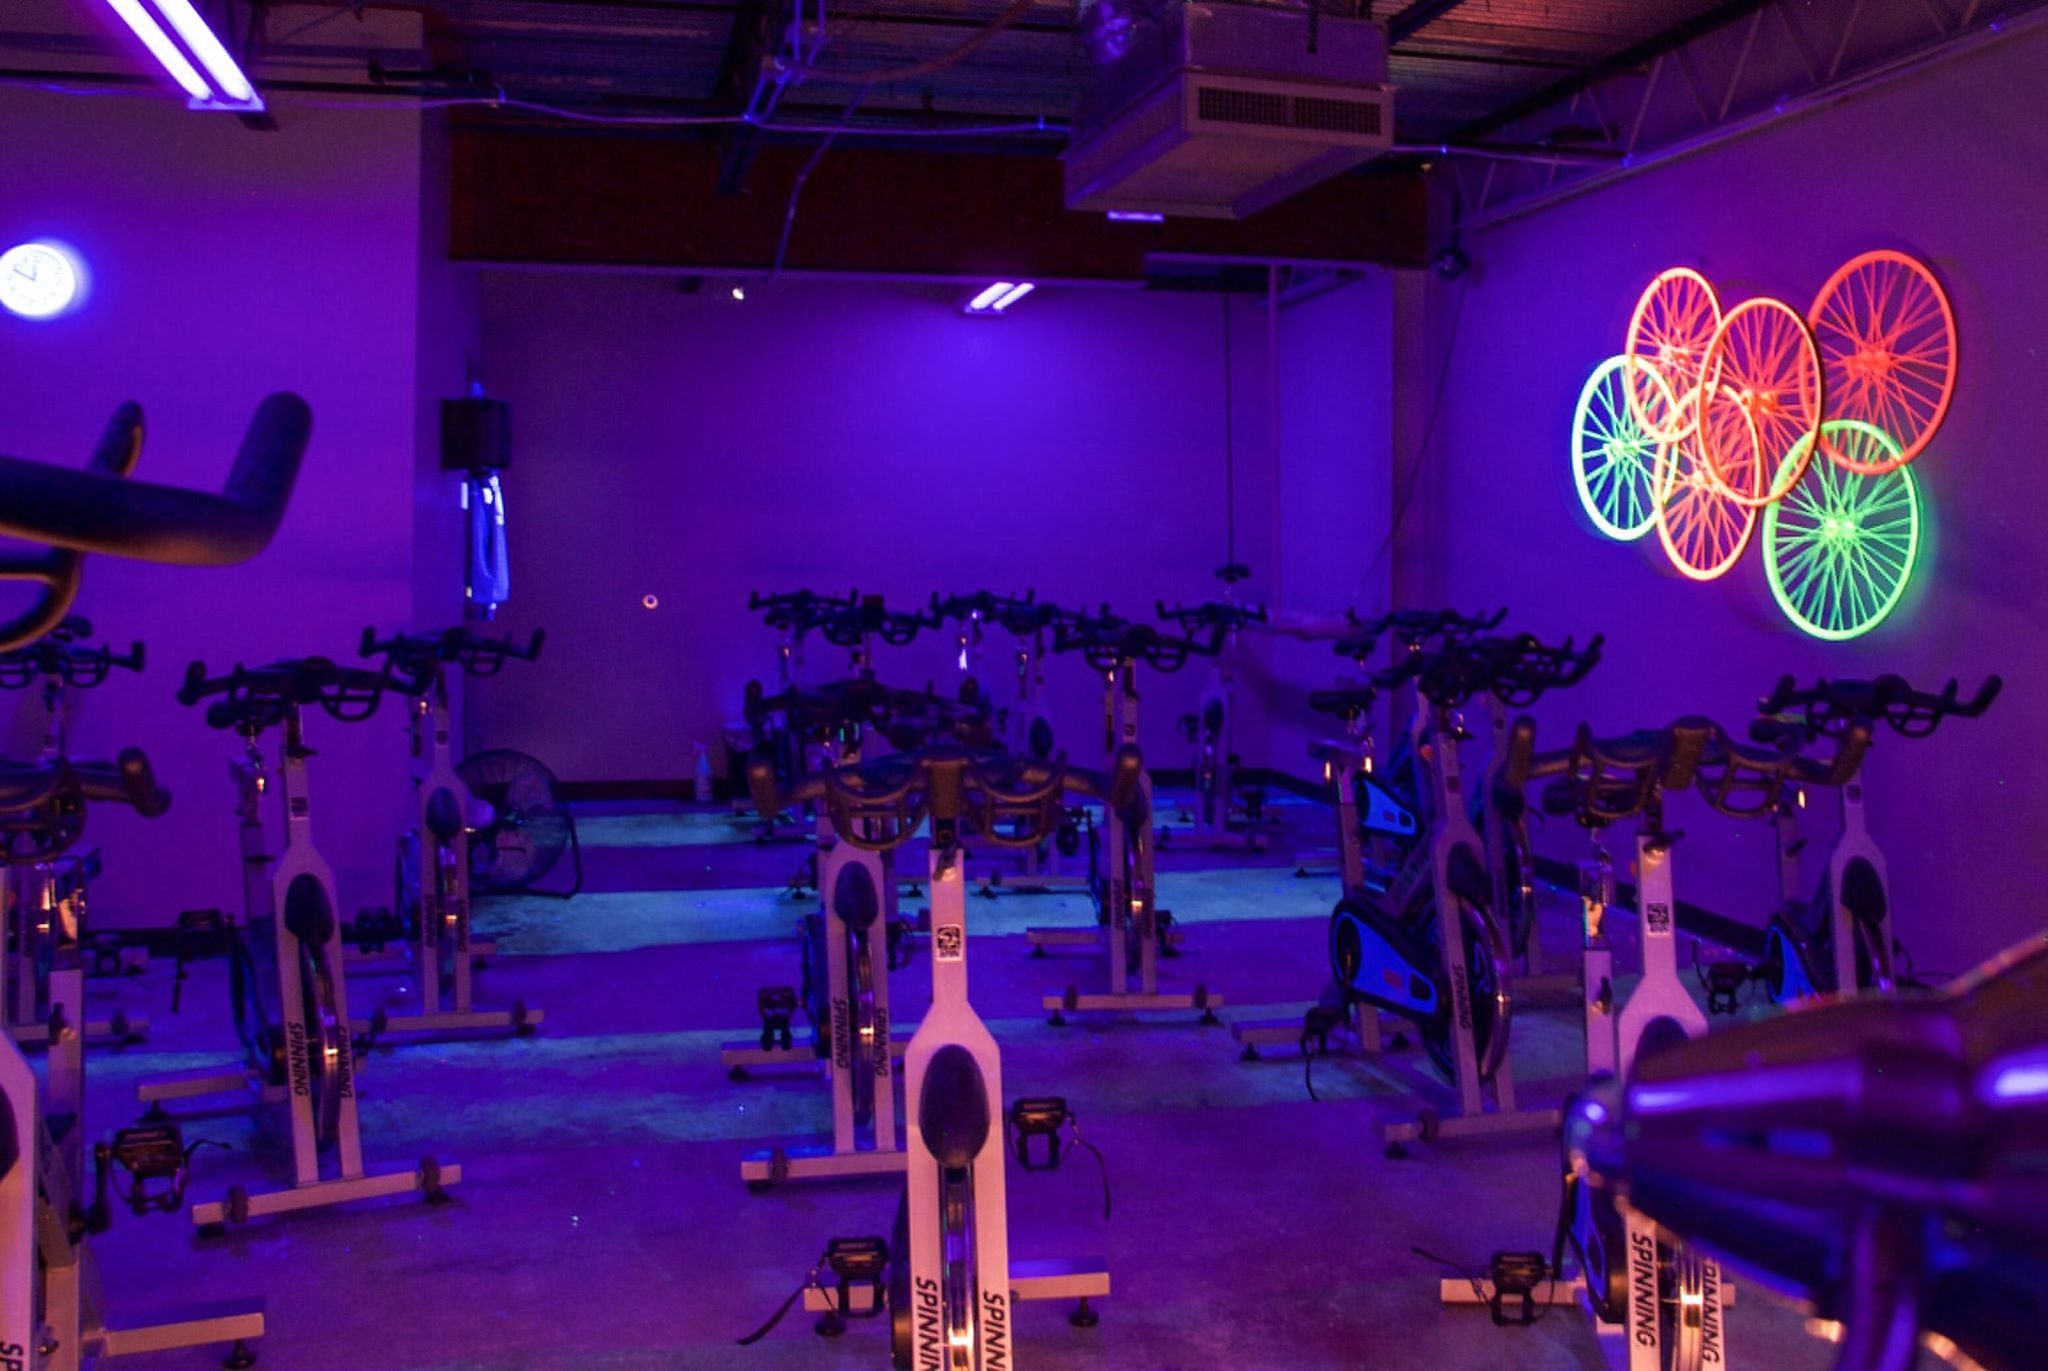 Spin, Indoor Cycling, Biking